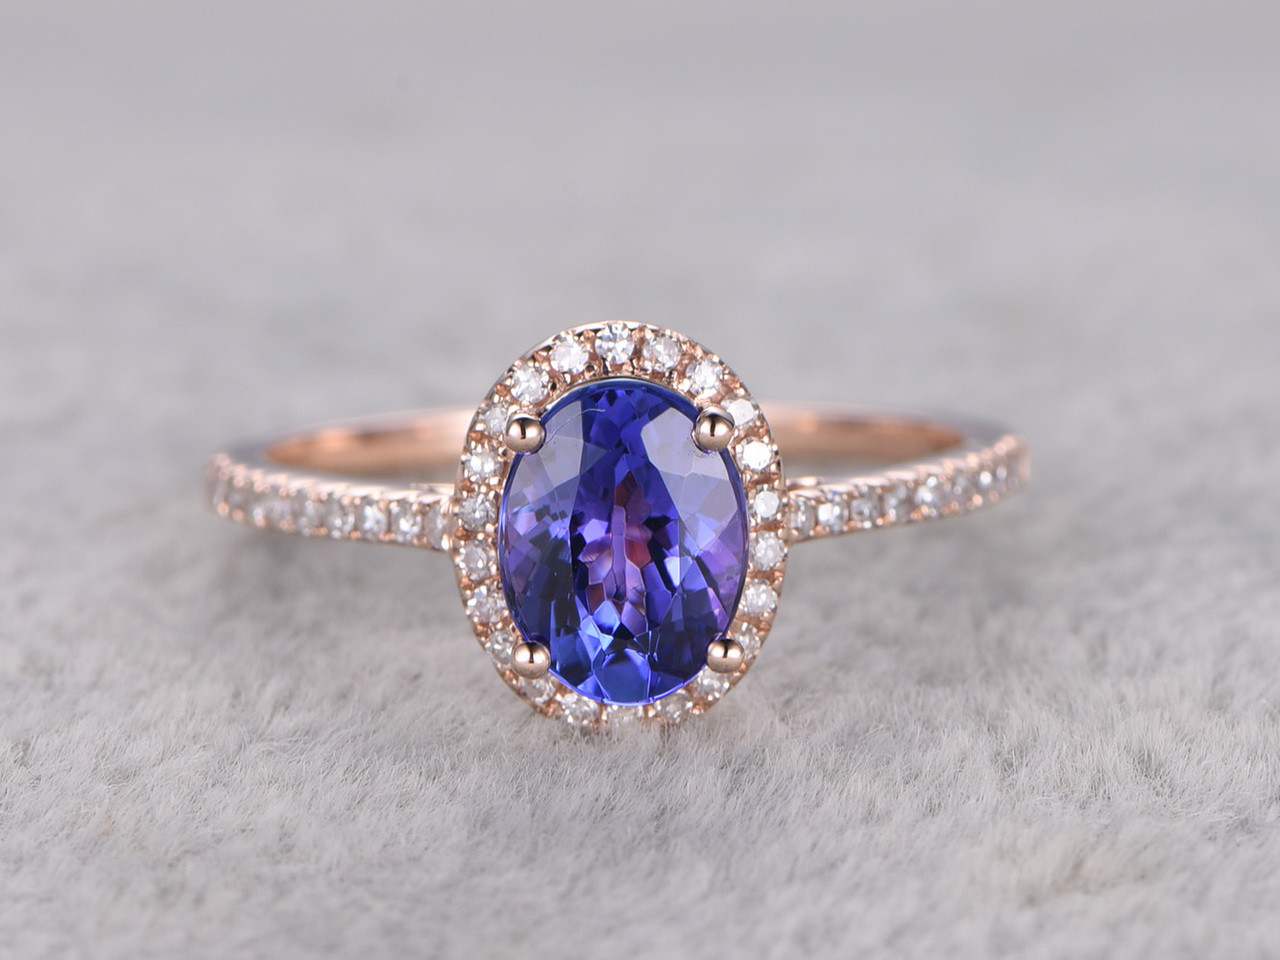 engagement rings tanzanite bands mccaul galleries wave for goldsmiths diamond